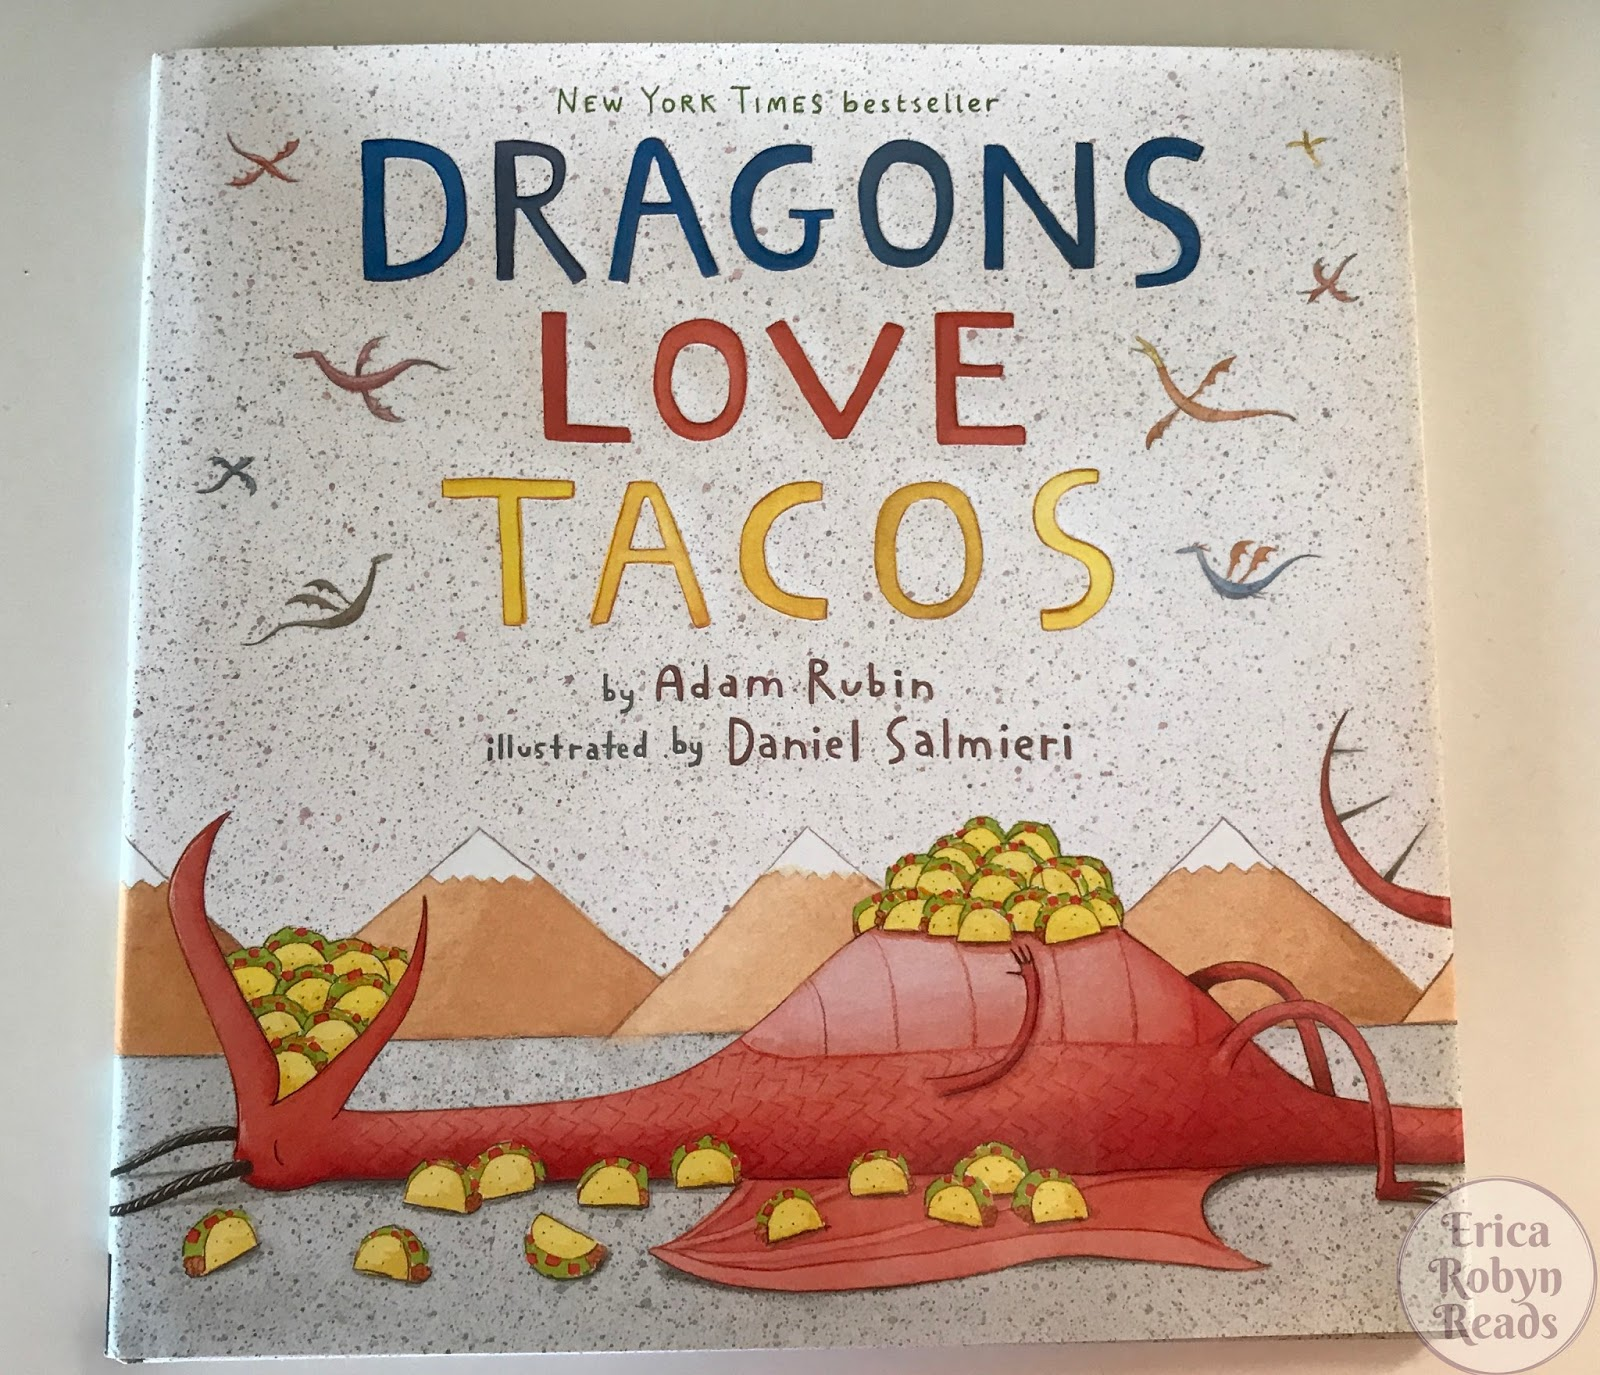 Dragons Love Tacos by Adam Rubin & Daniel Salmieri book cover image